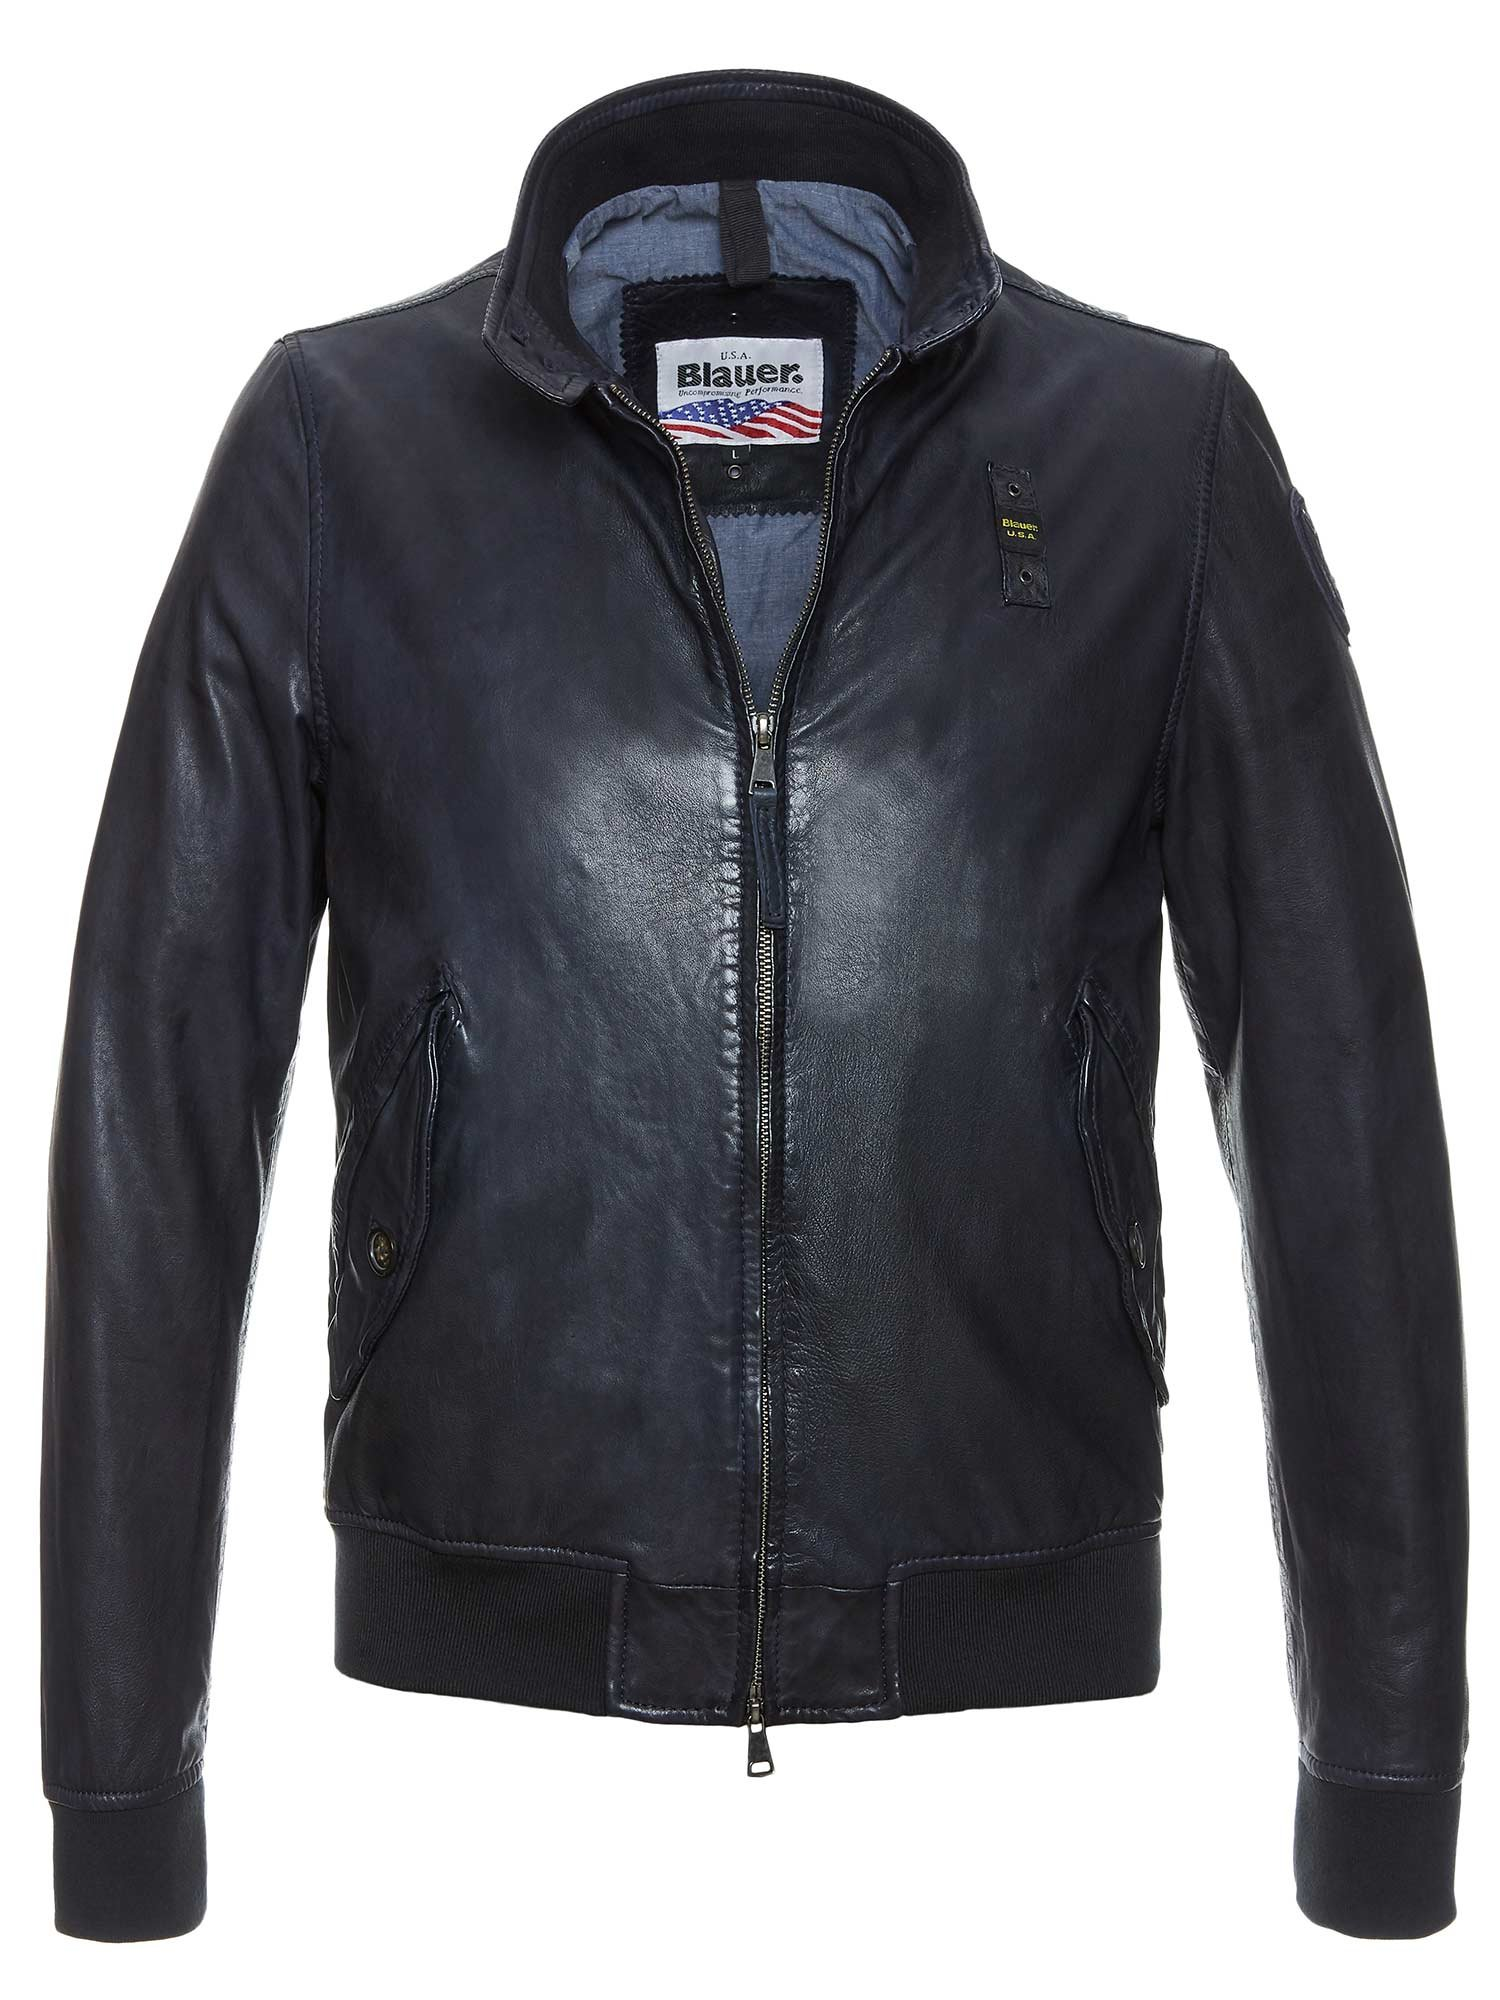 ADAM RUGGED LEATHER BOMBER - Blauer